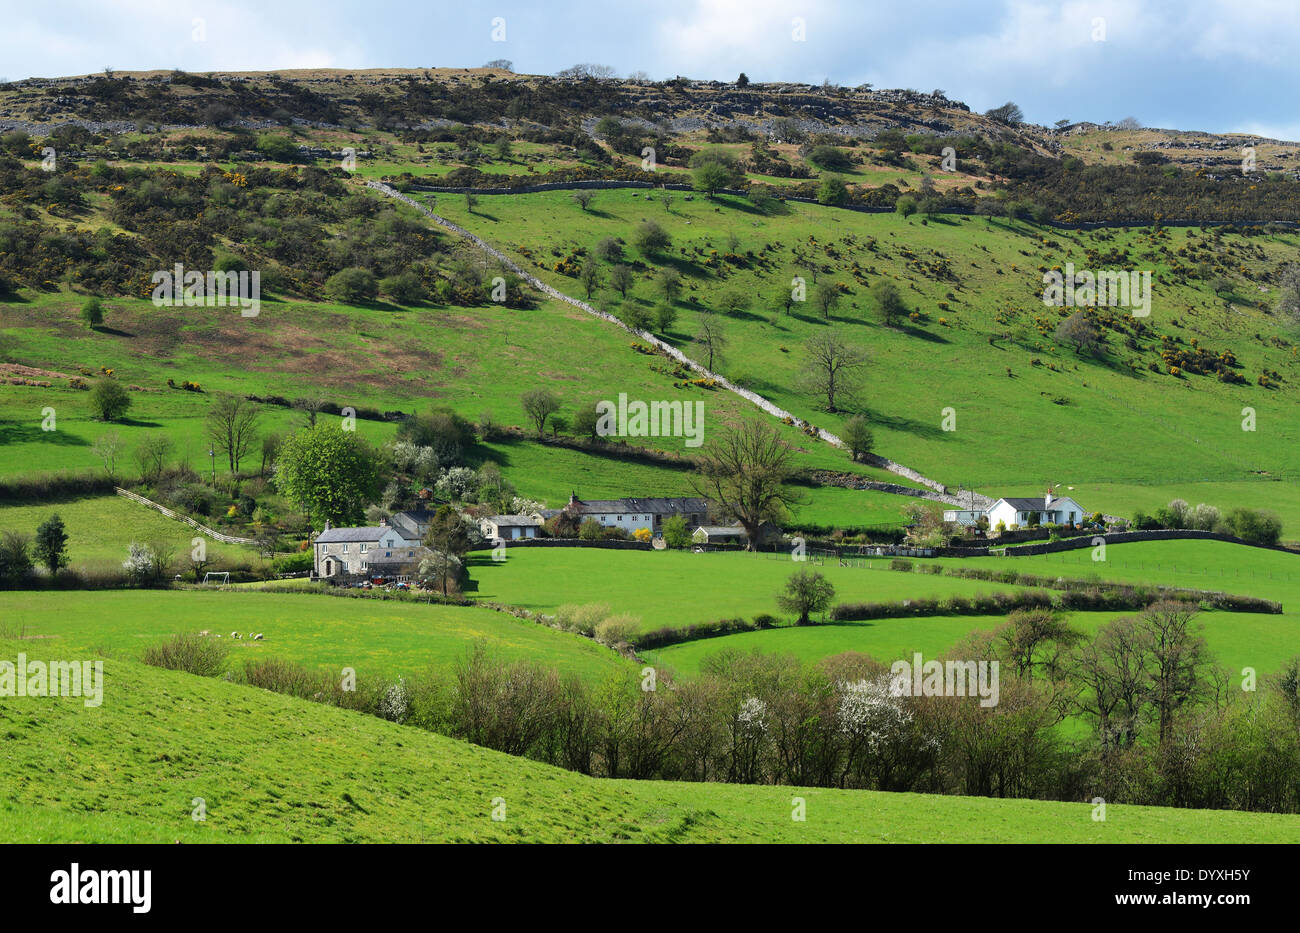 Rural Landscape in Cumbria, North West England with Hamlet in valley Stock Photo